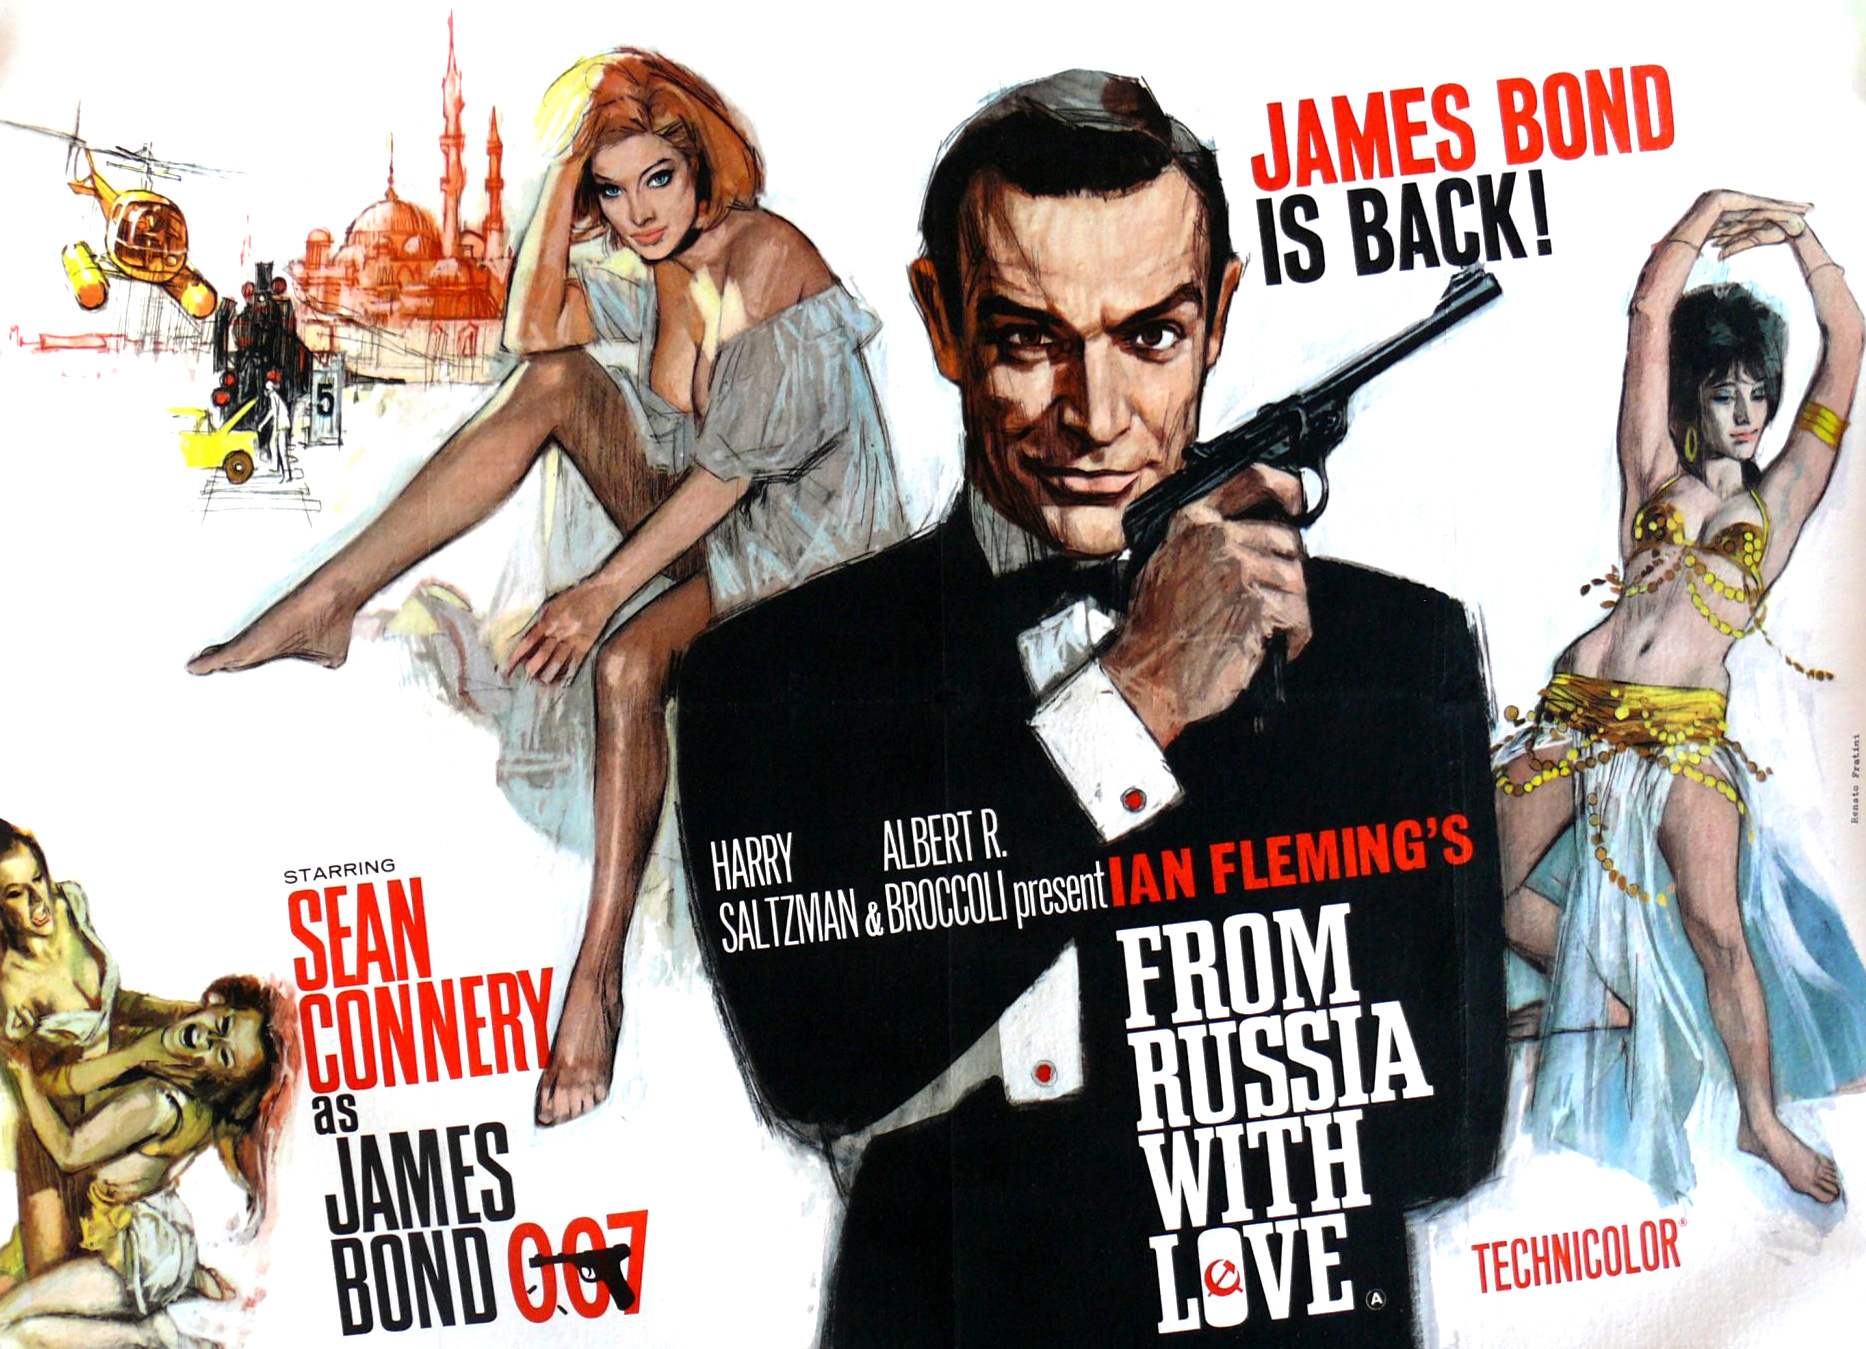 4060270384 2cb6c91ce6 o 30 Things You Probably Didn't Know About The James Bond Films